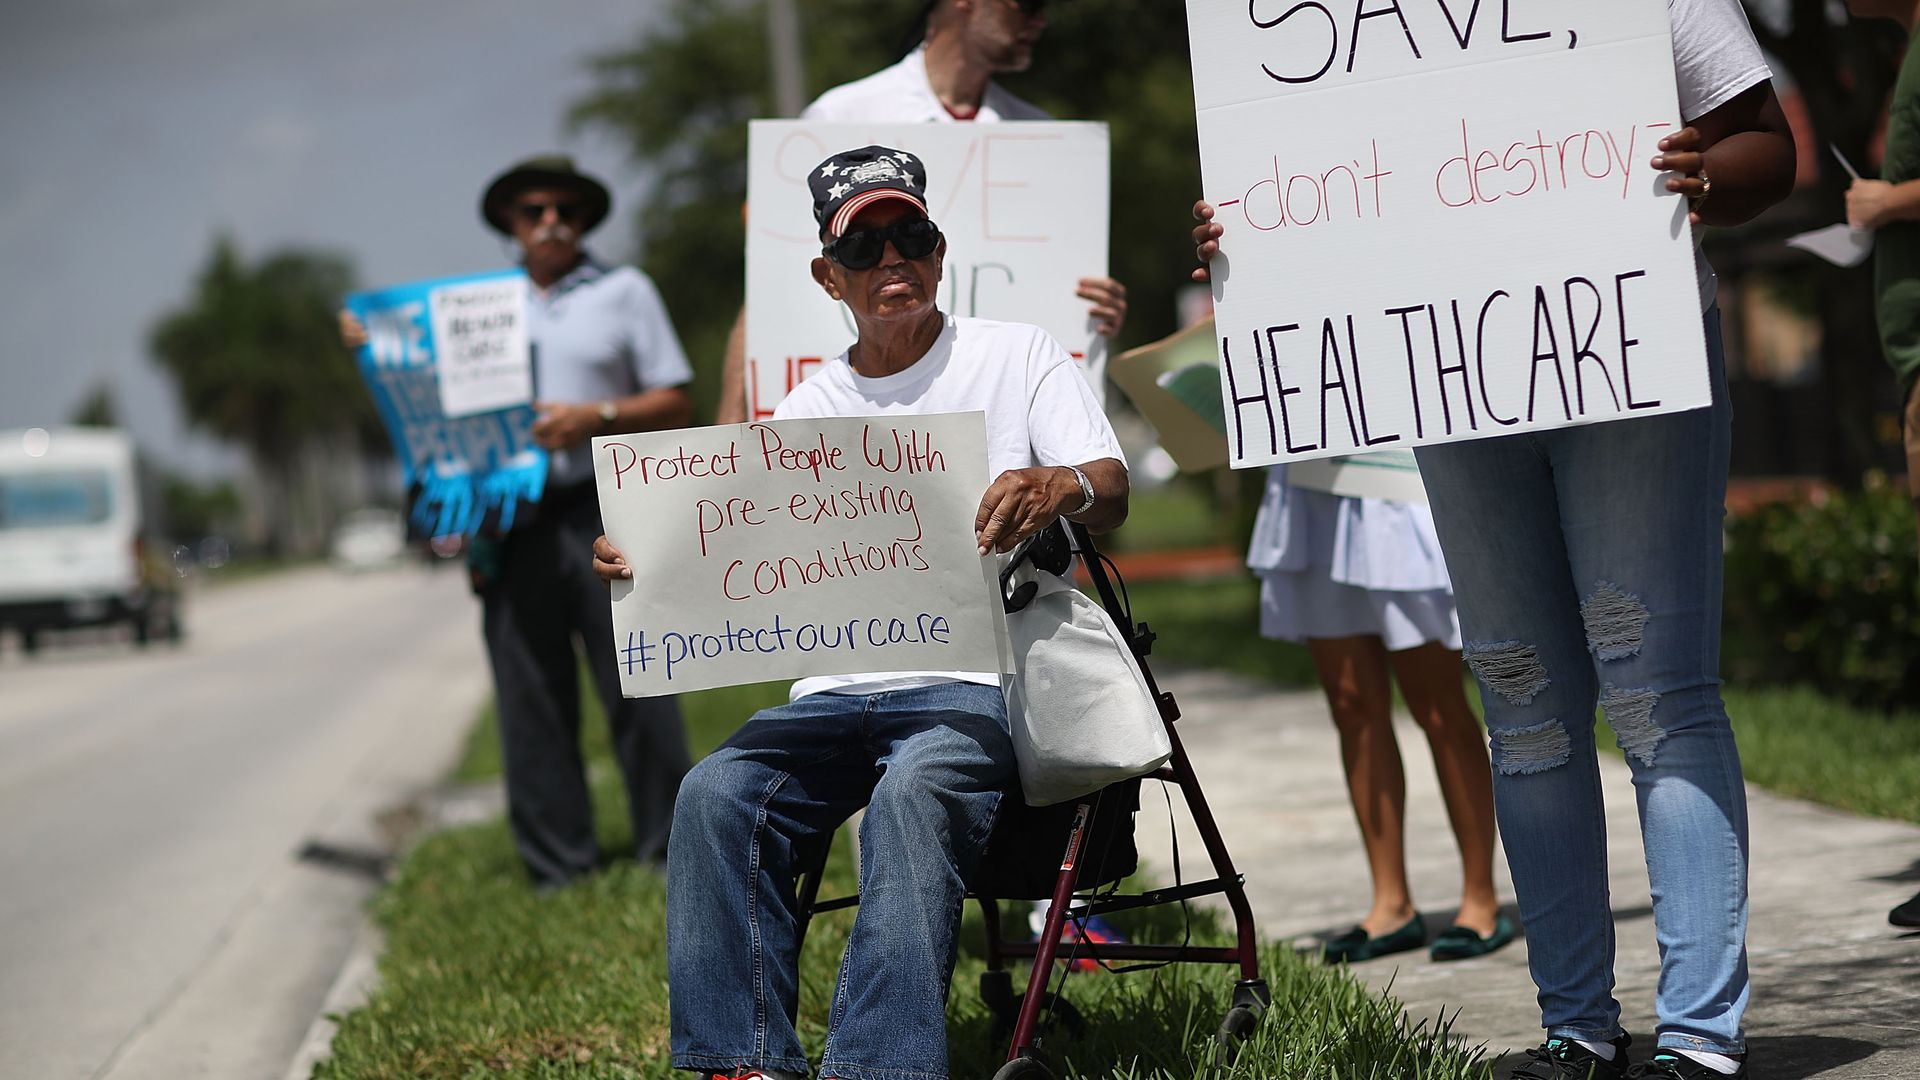 Protestors in Miami, Florida